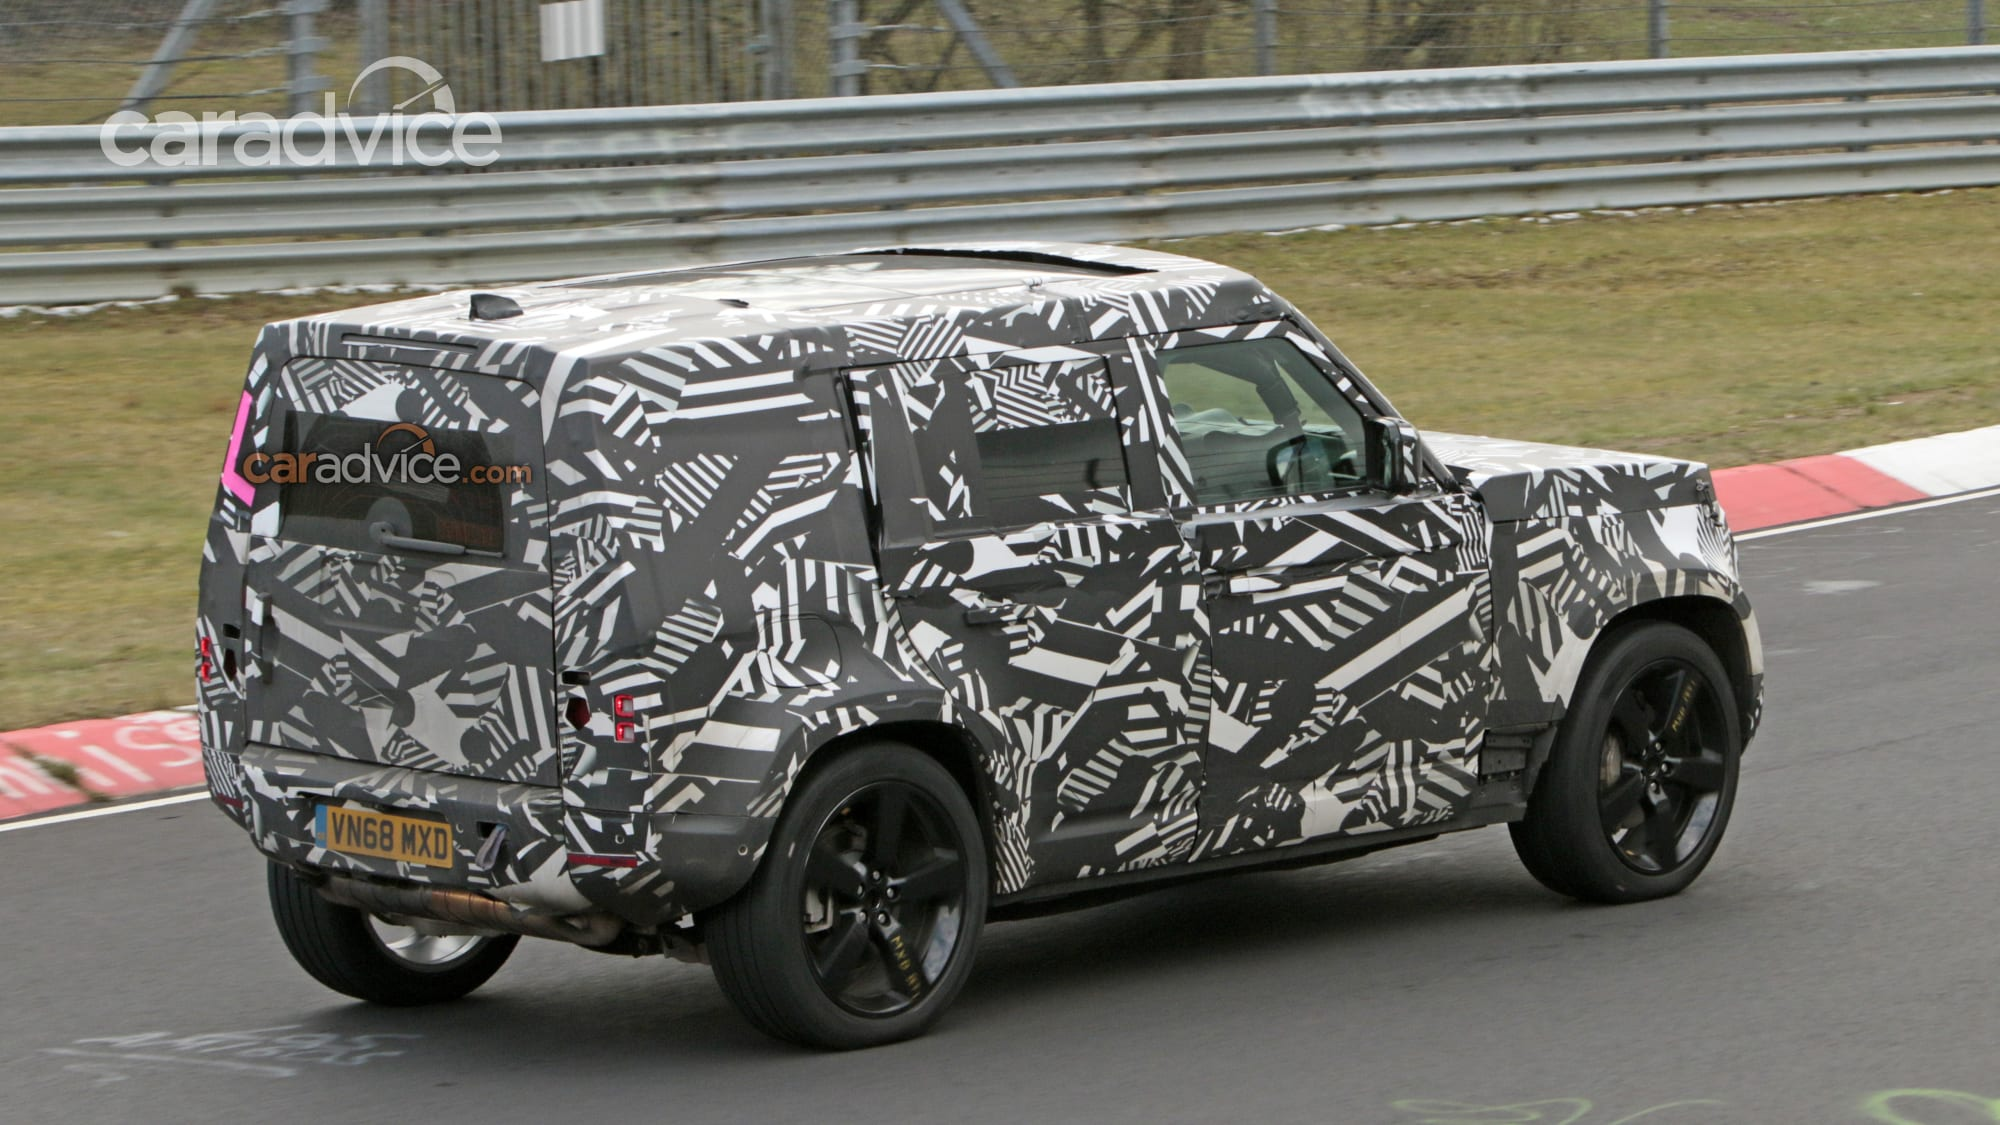 2020 Land Rover Defender spied | CarAdvice